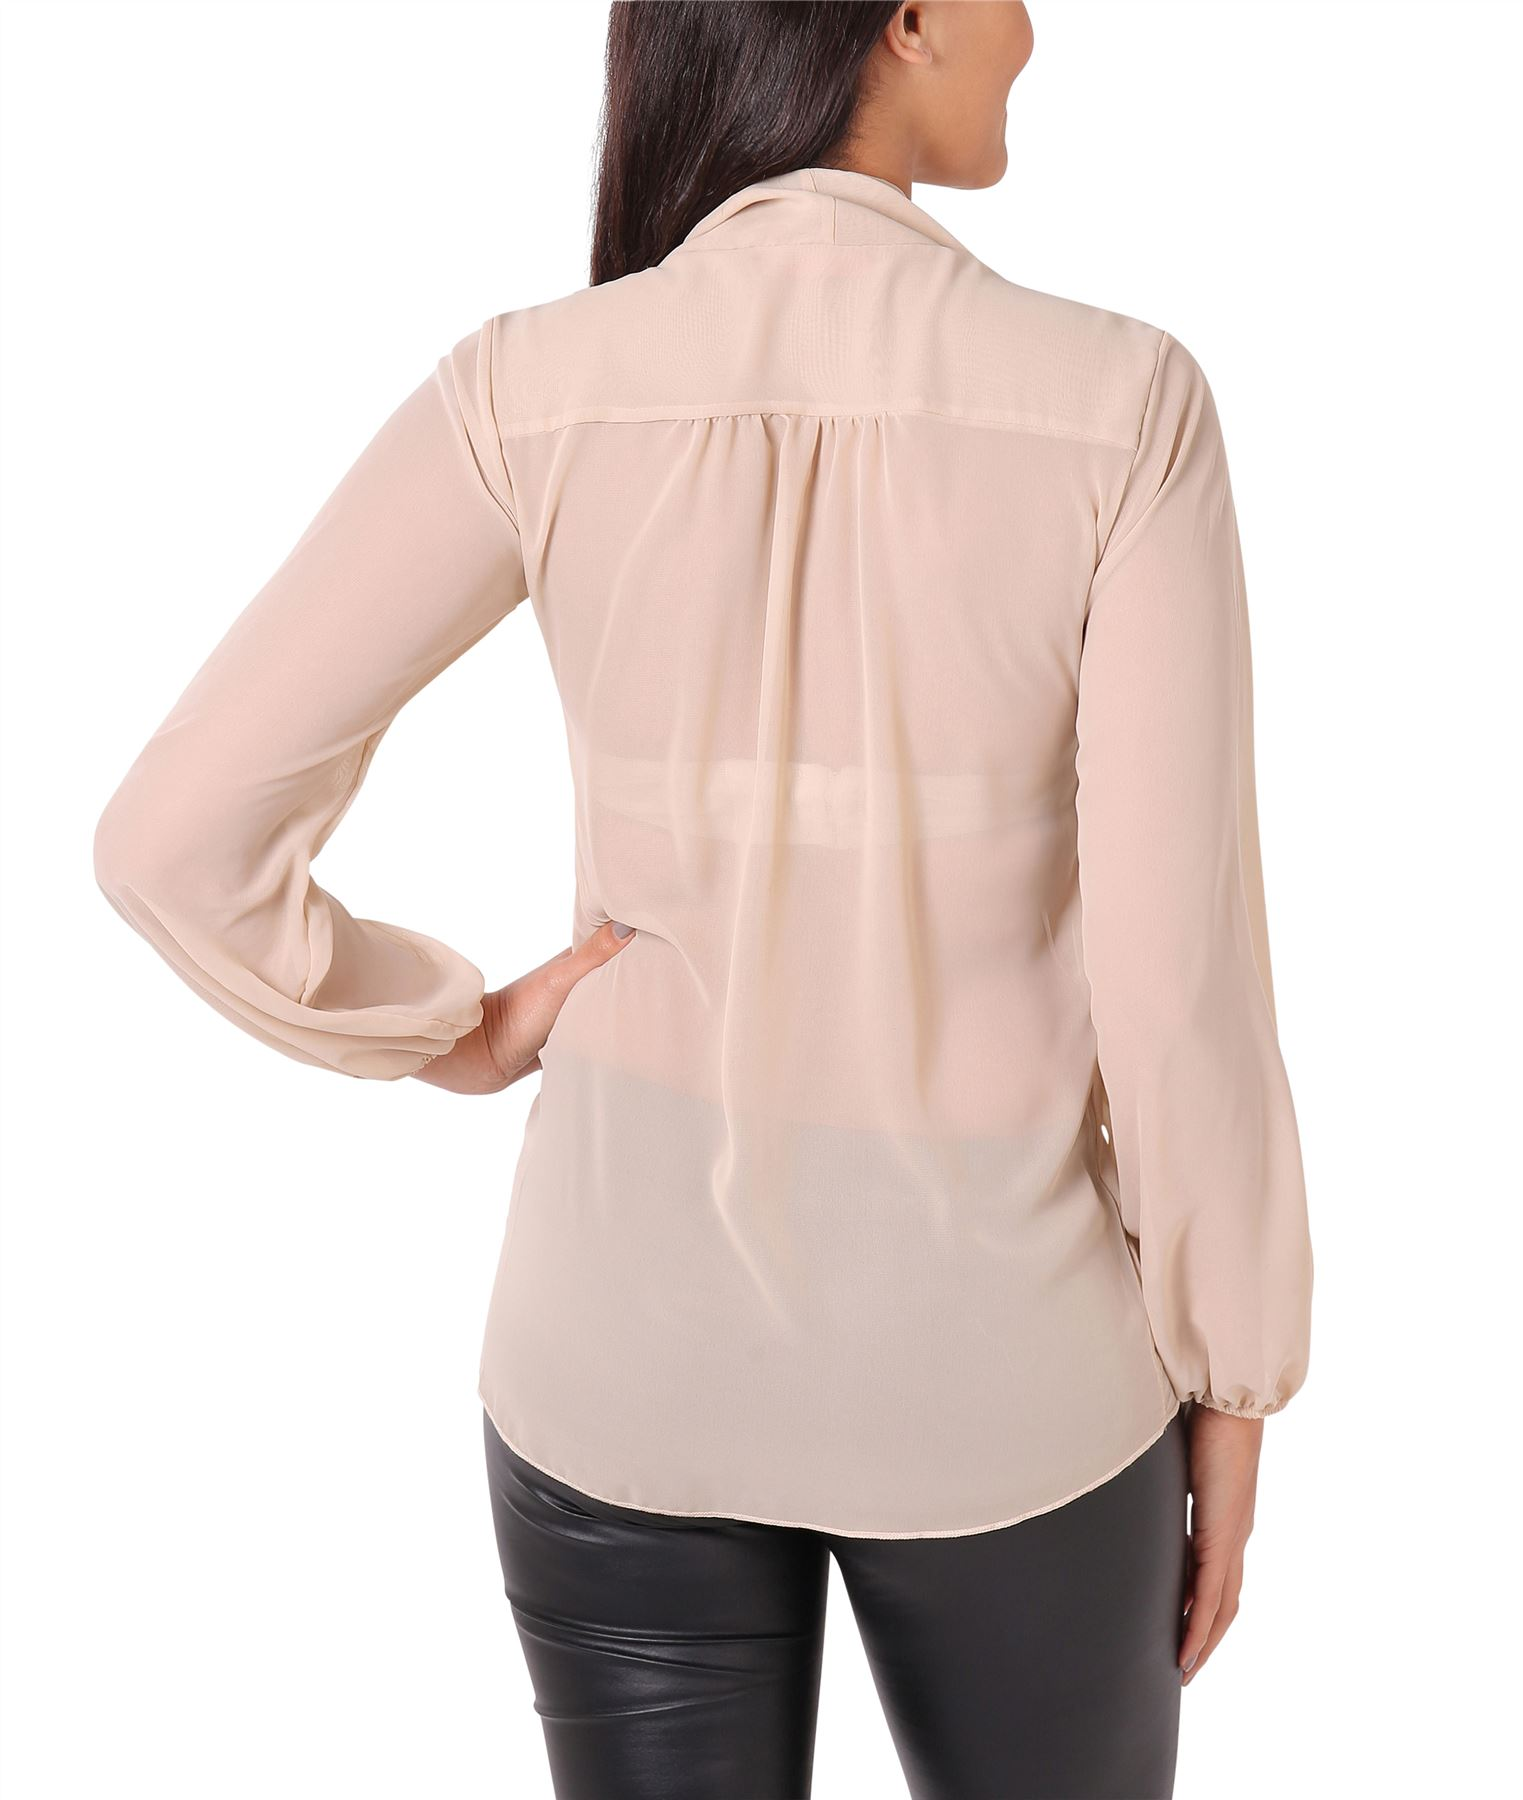 Womens-Ladies-Chiffon-Blouse-Long-Sleeve-Pussy-Bow-Top-Plain-Shirt-Office-Party thumbnail 21